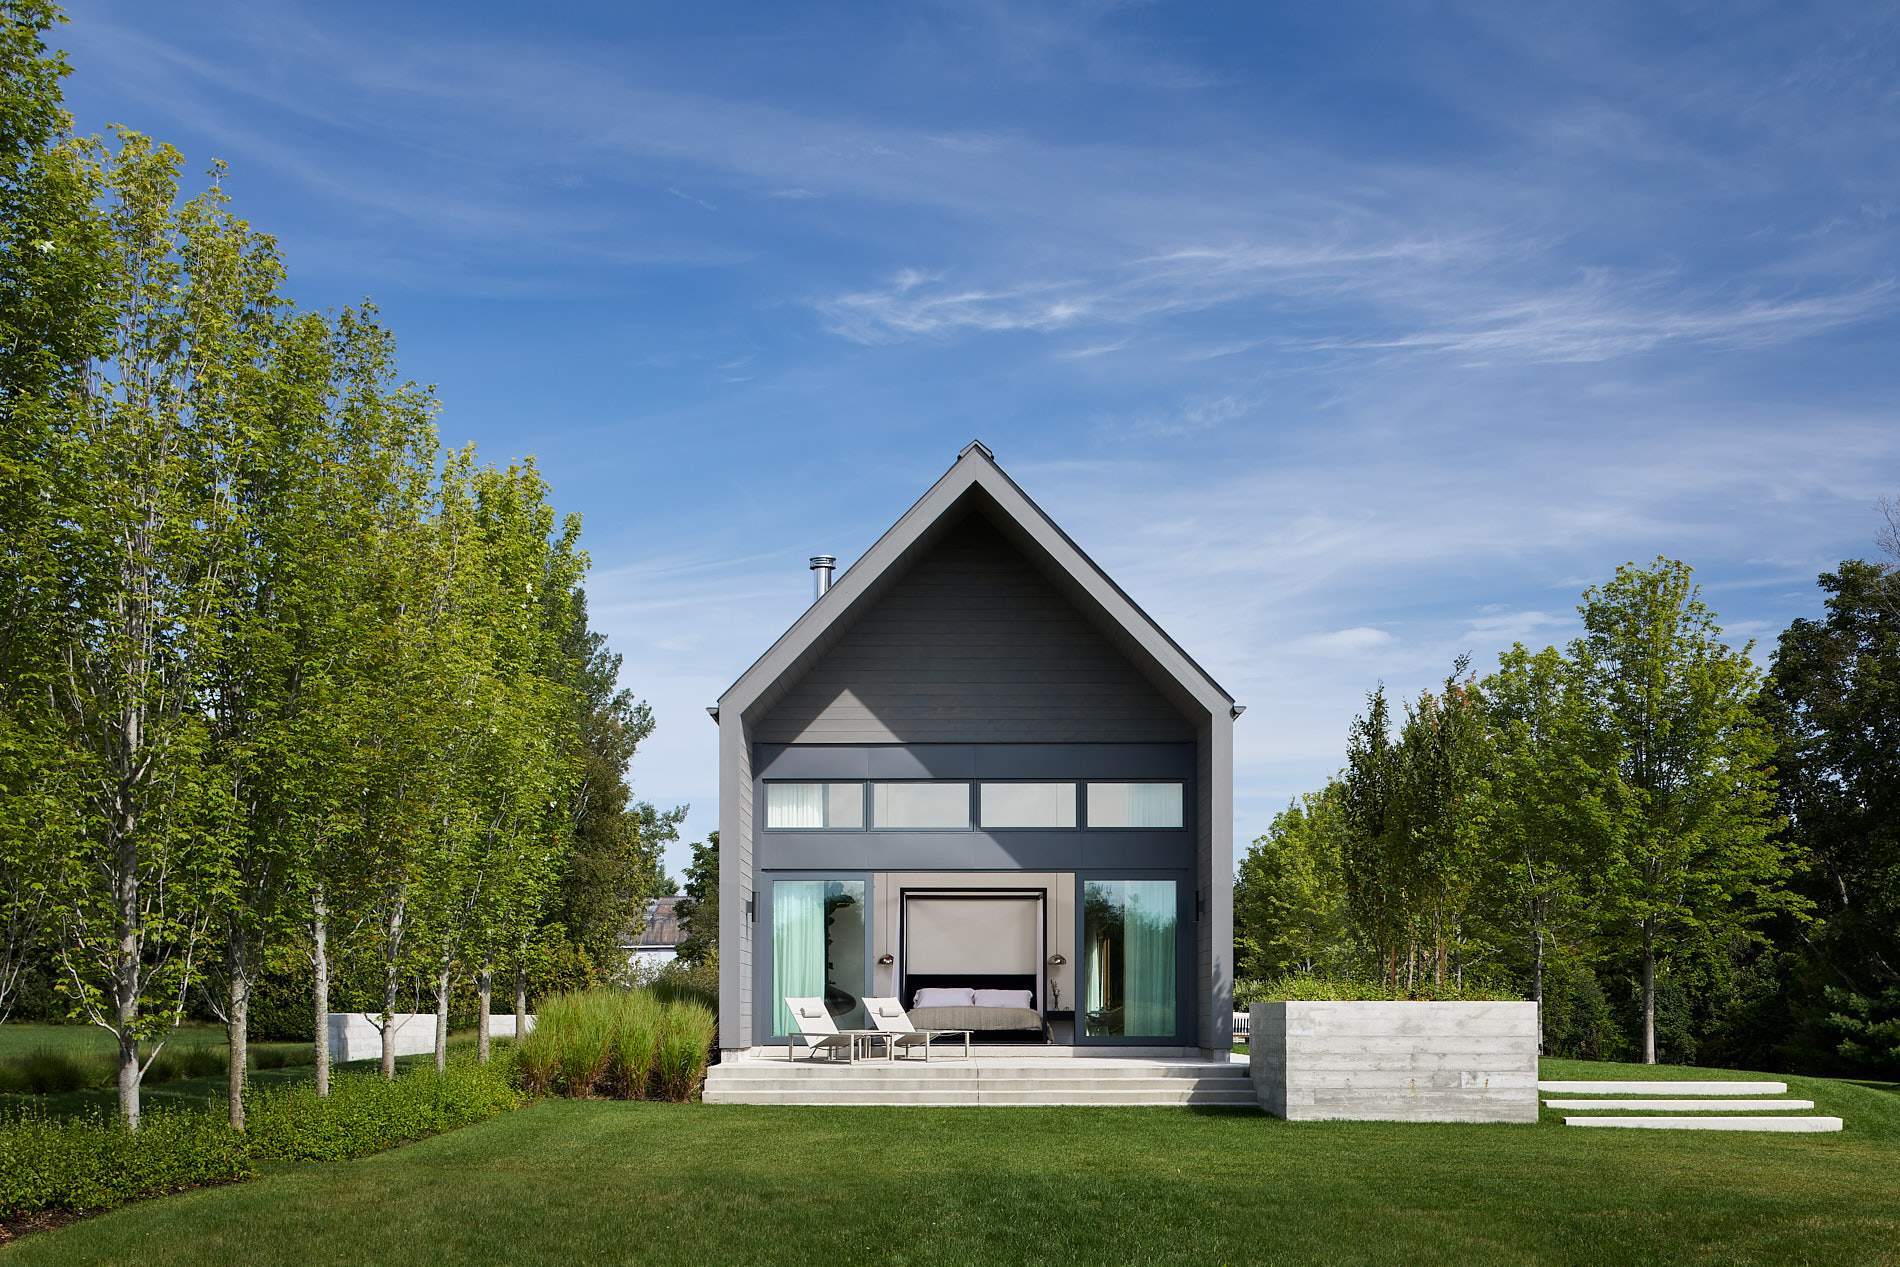 Location: Ganaraska, Ontario / Size: 500 sq m / Completed: 2017  Photos by: doublespacephoto.com / Interiors by: and-daughters.com / Construction by: denbosch.ca